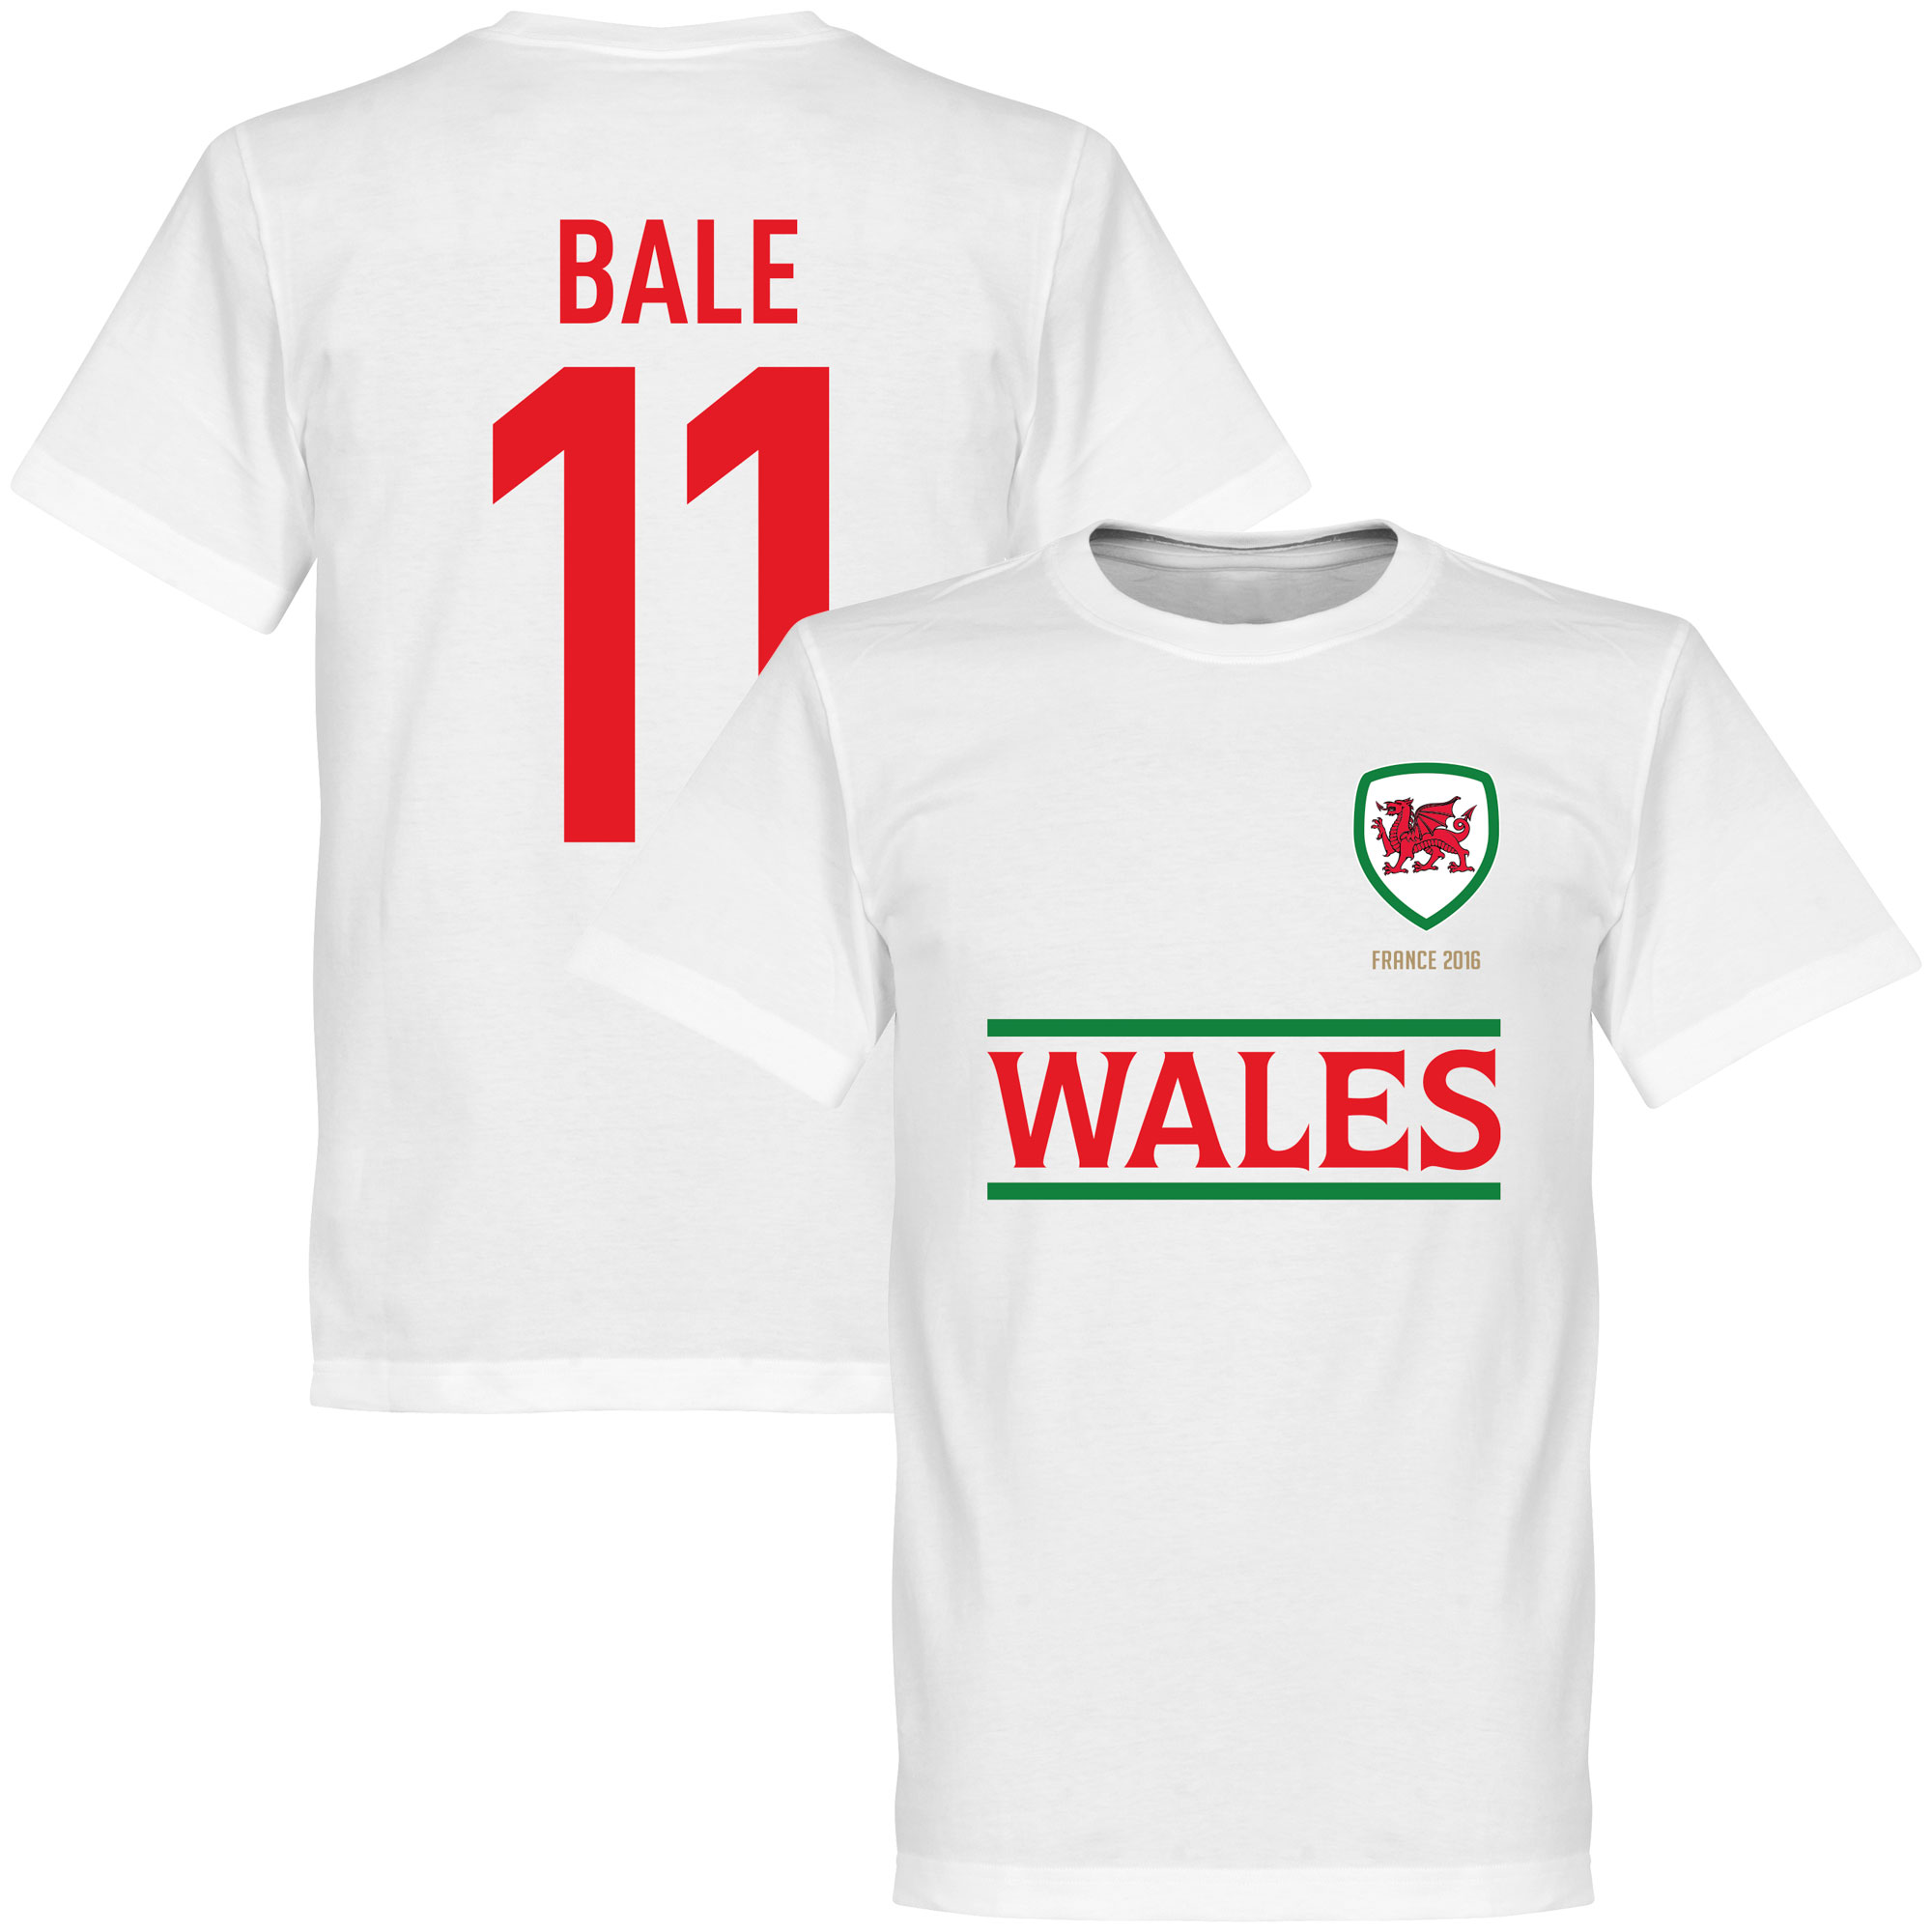 Wales Bale Kids Team Tee - White - 12